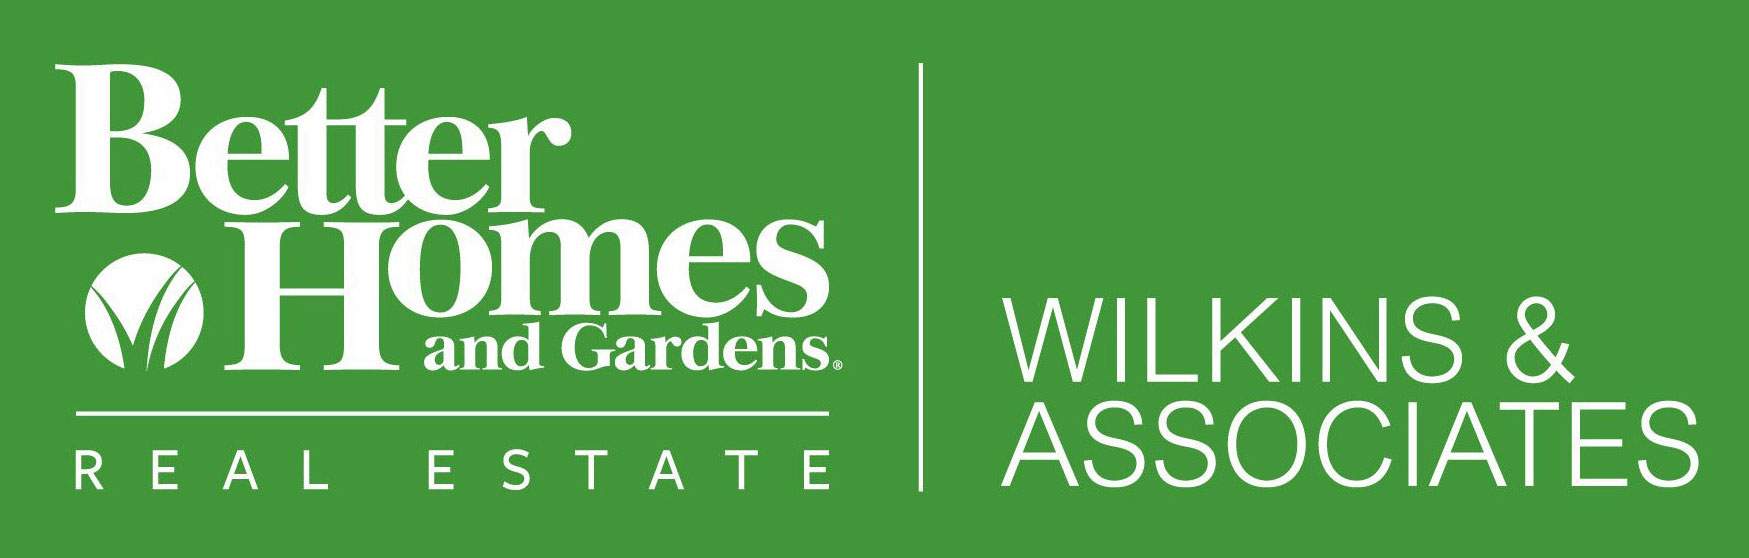 Top pocono realtors join better homes and gardens wilkins associates nepa property management for Better homes and gardens real estate rentals